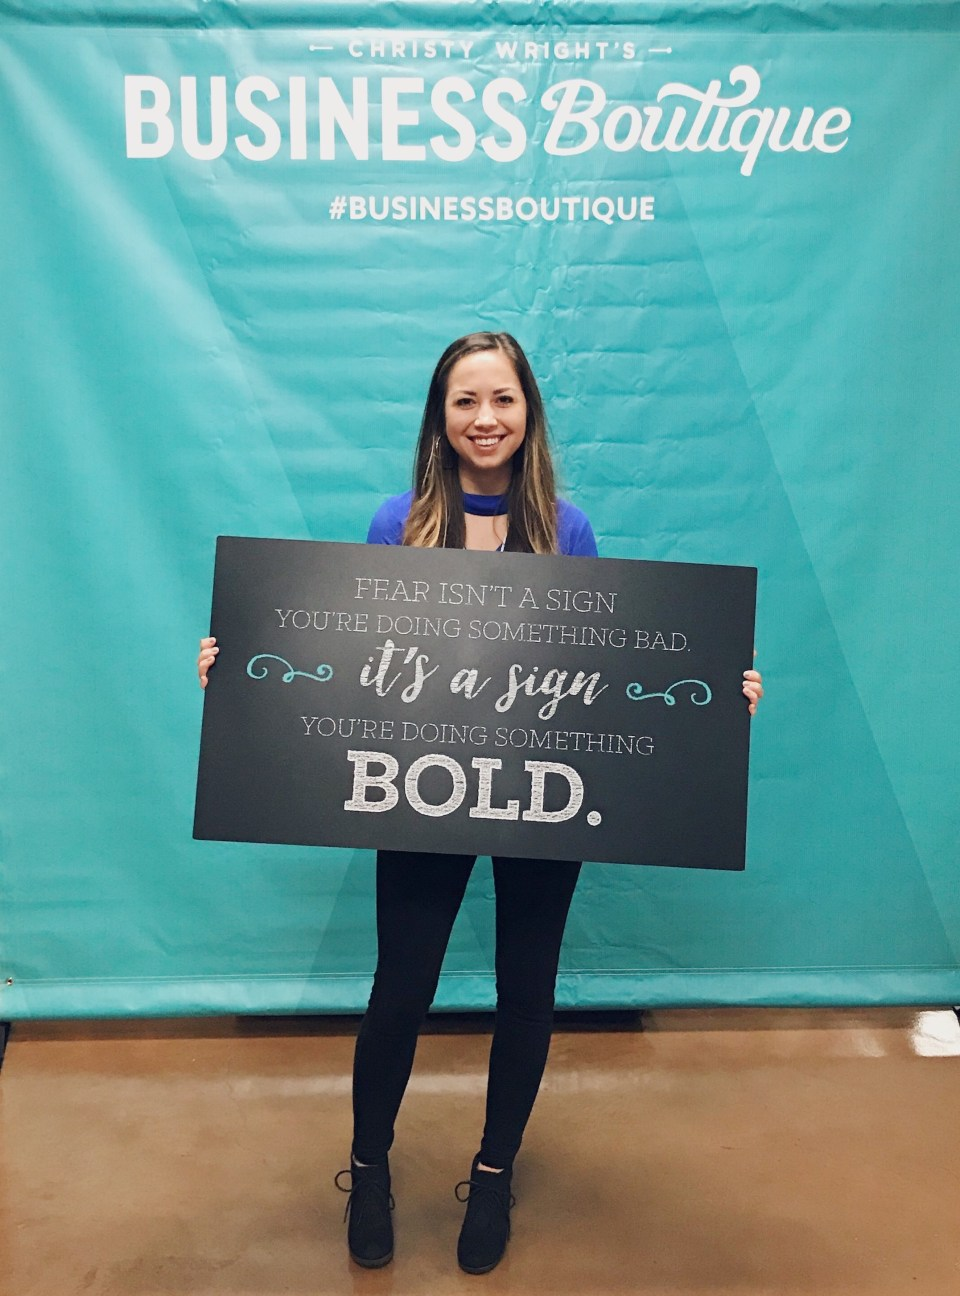 Business-Boutique-Nashville-2018-SpeakSocial1